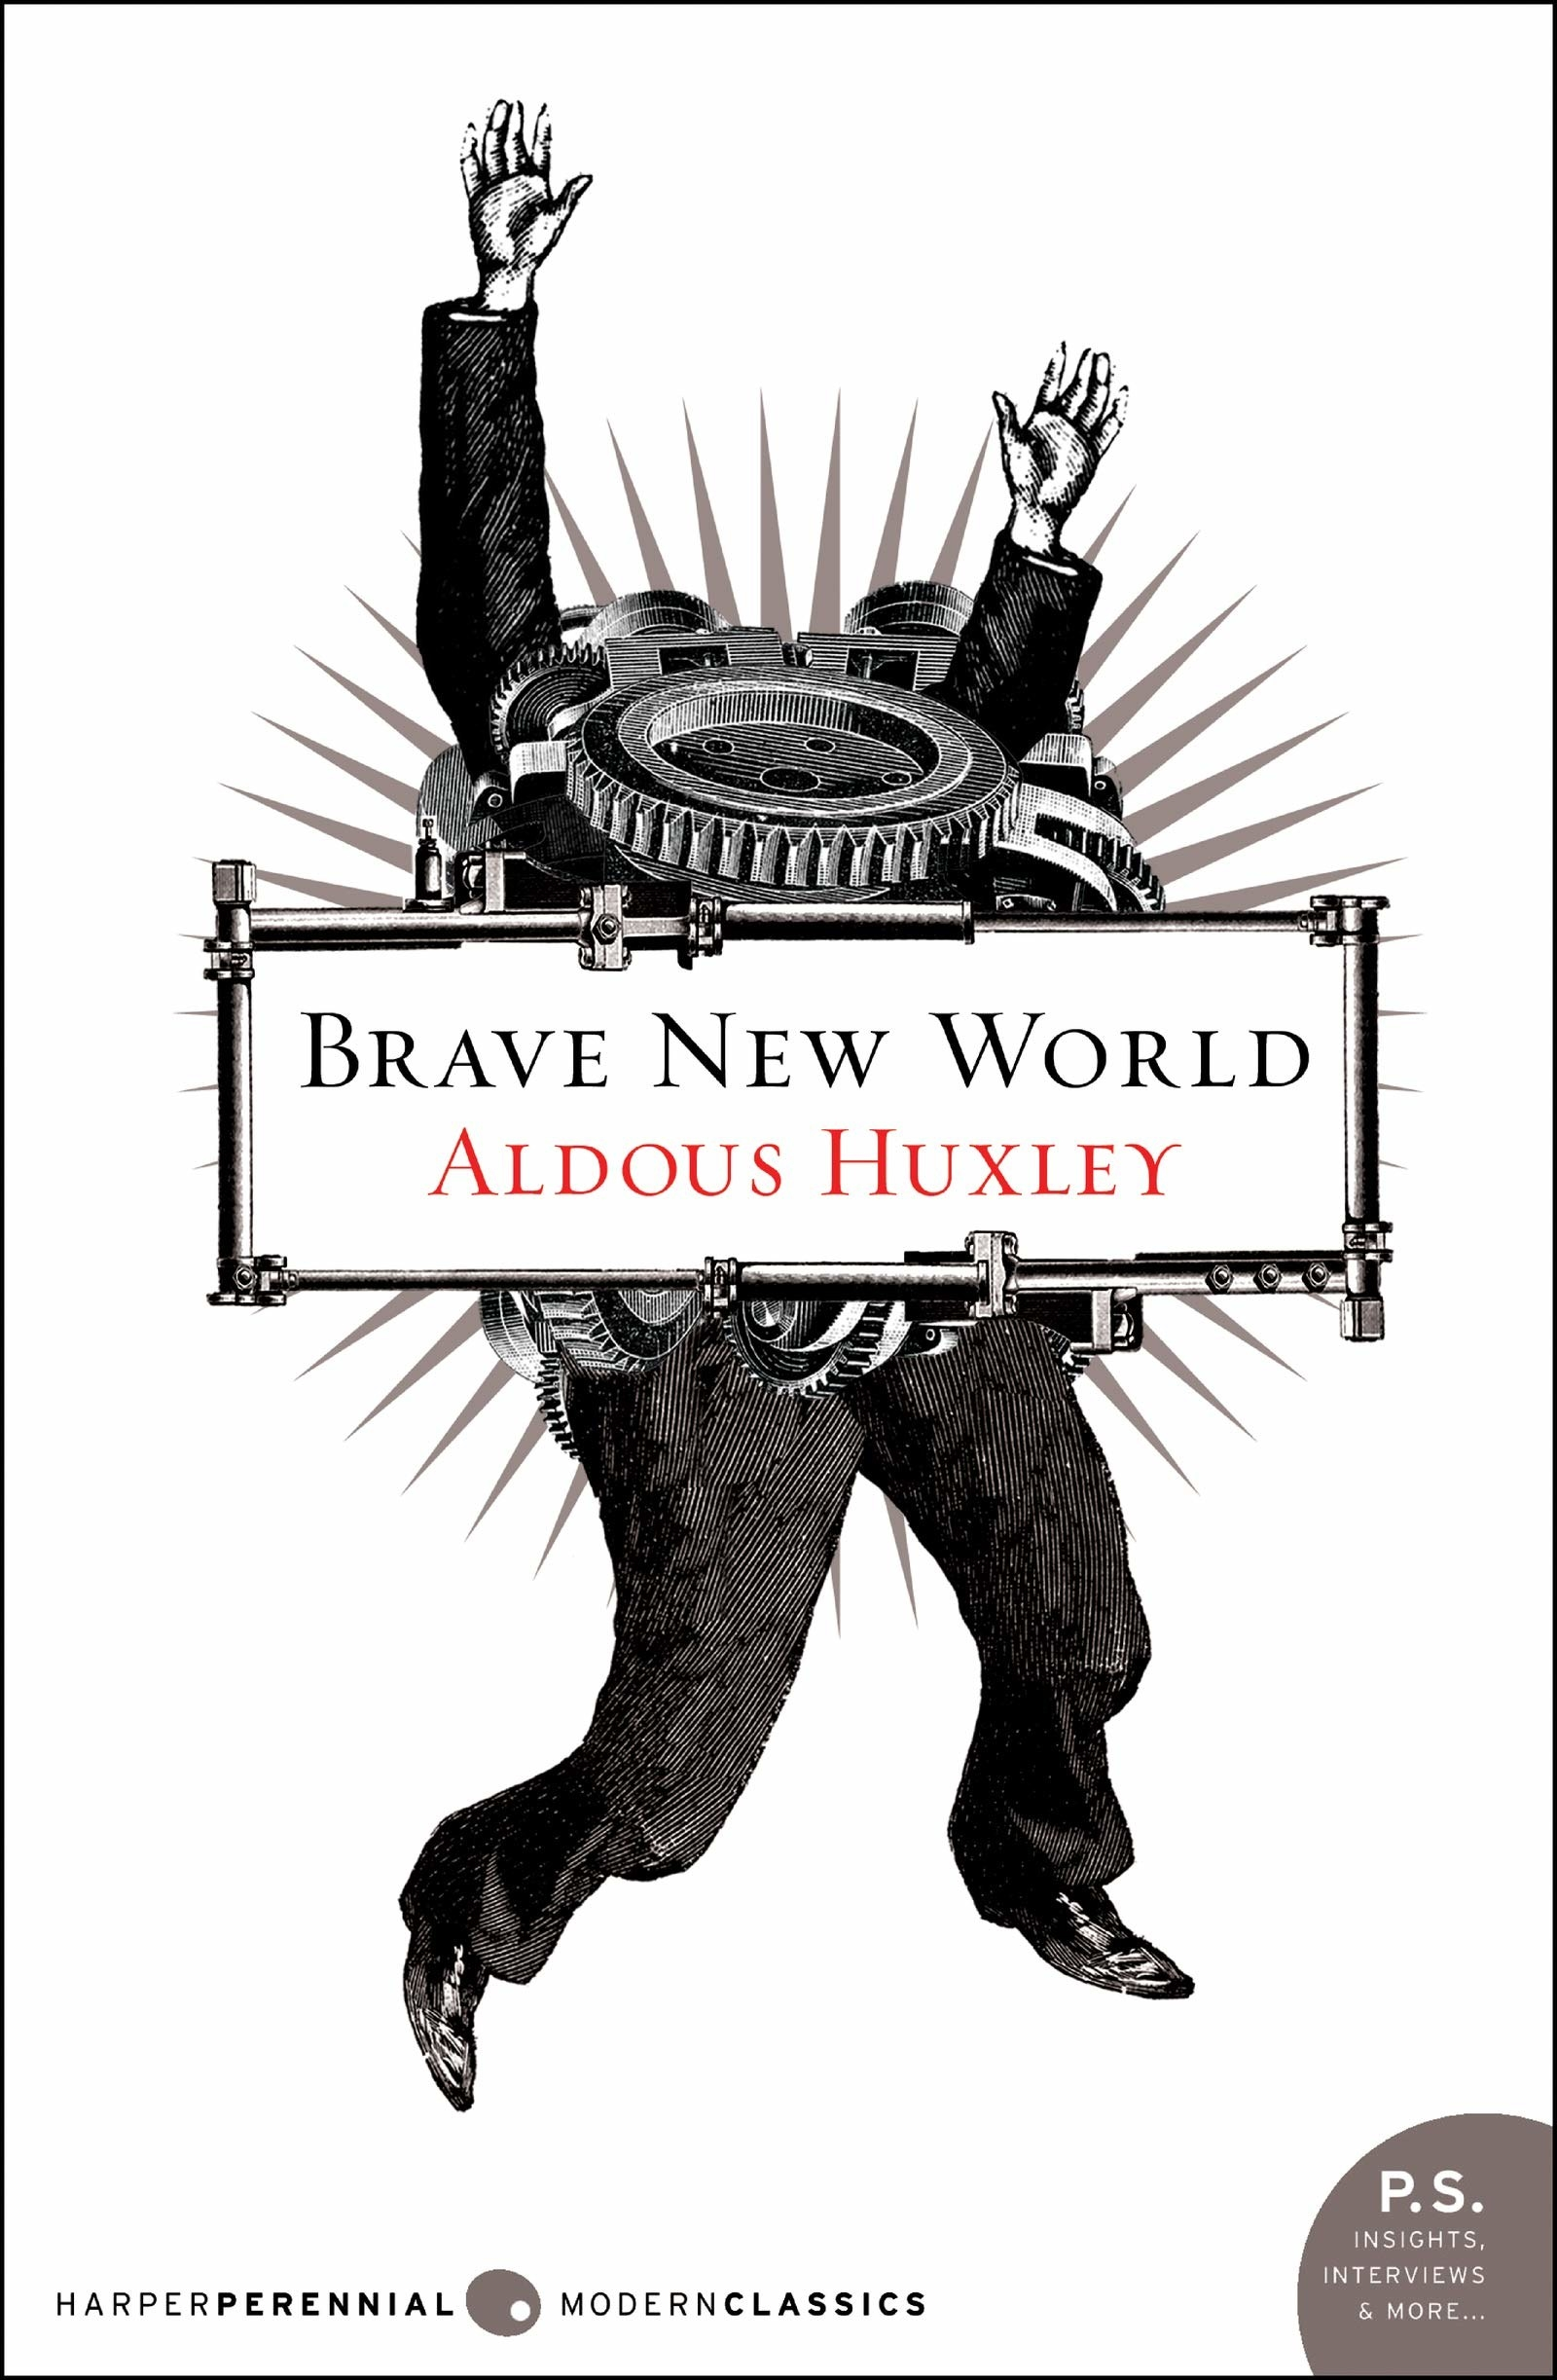 The book cover for Brave New World by Aldous Huxley